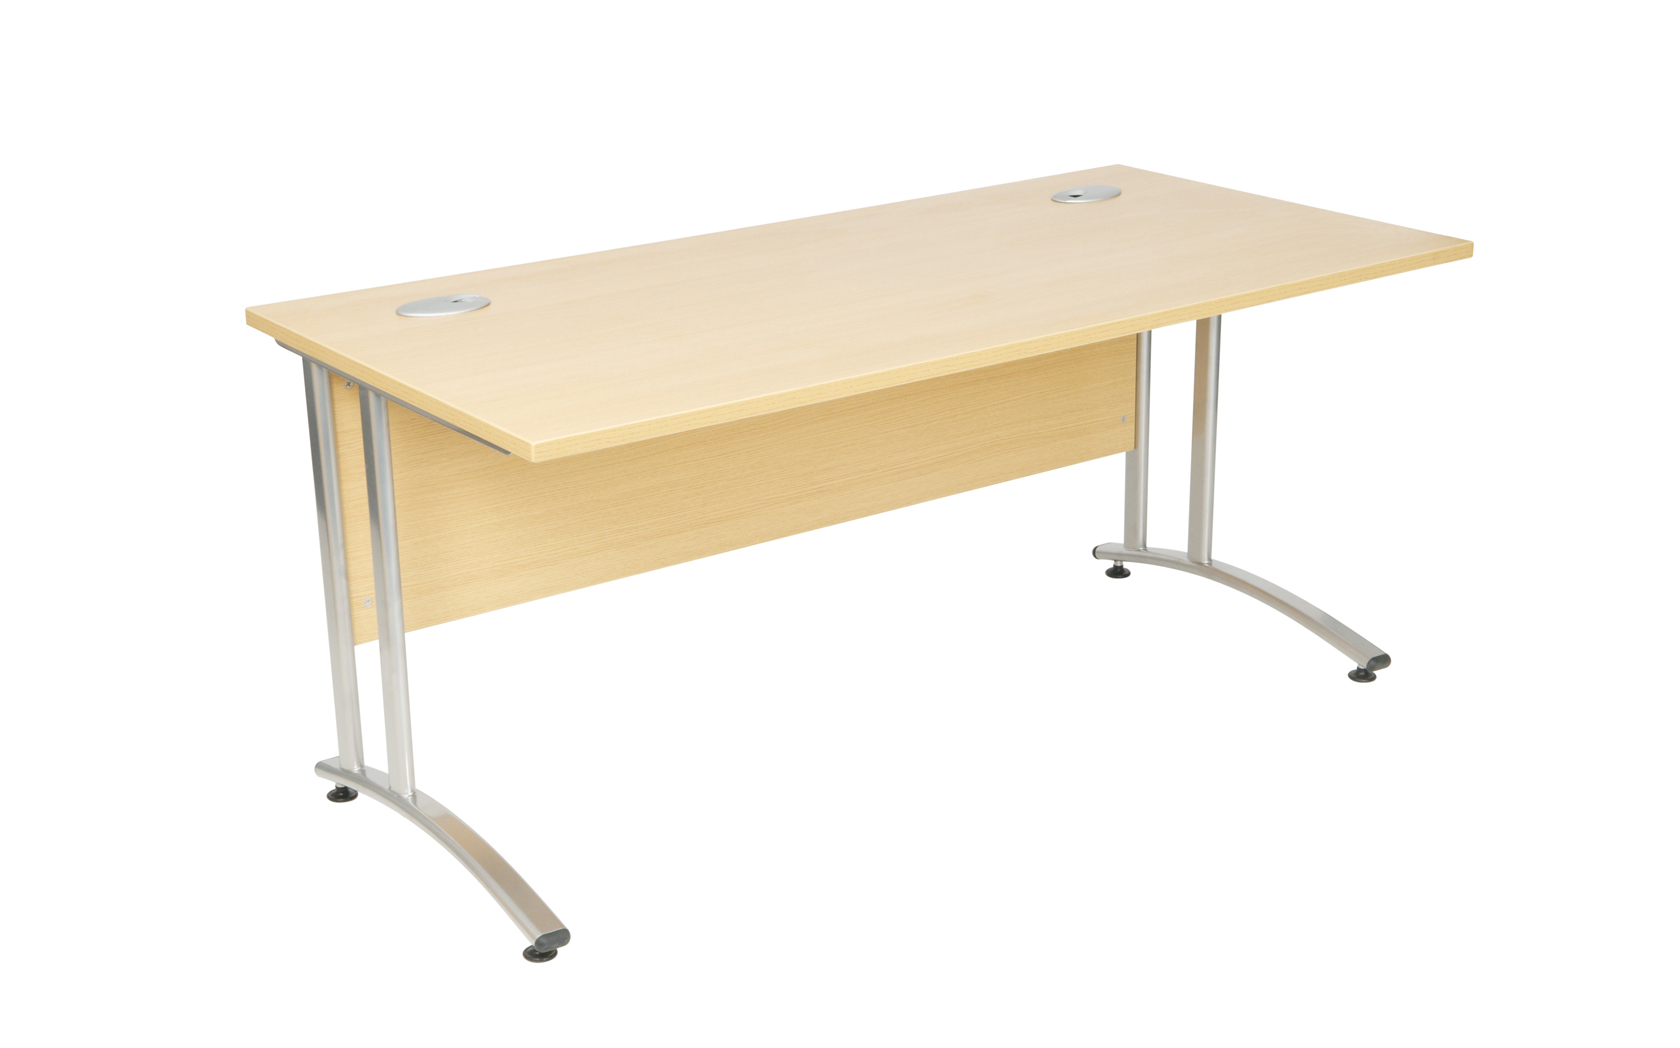 Rectangular Workstation Rcm1602 Rcm1601 3mm Abs Edging Desk Adjustable Foot Metal To Fixings 80mm Cable Port